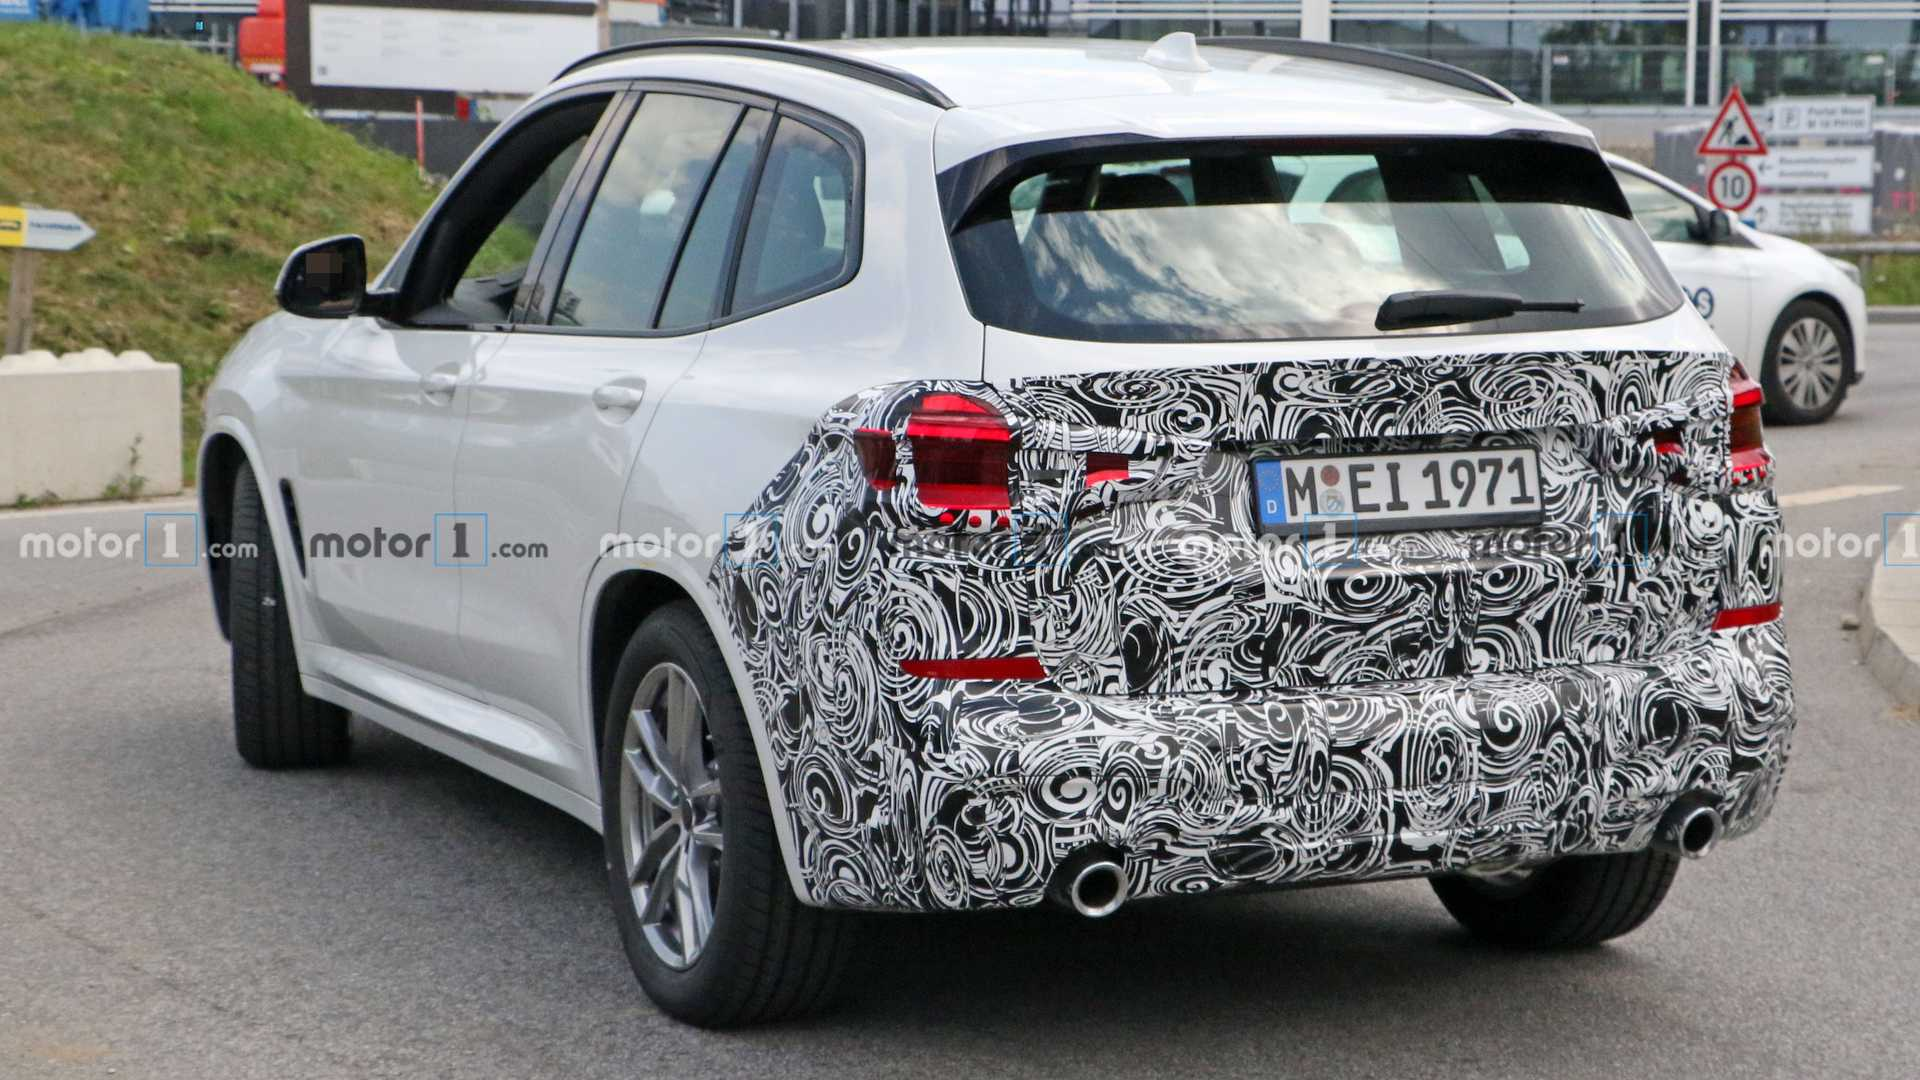 2022-bmw-x​3-spy-phot​o-rear